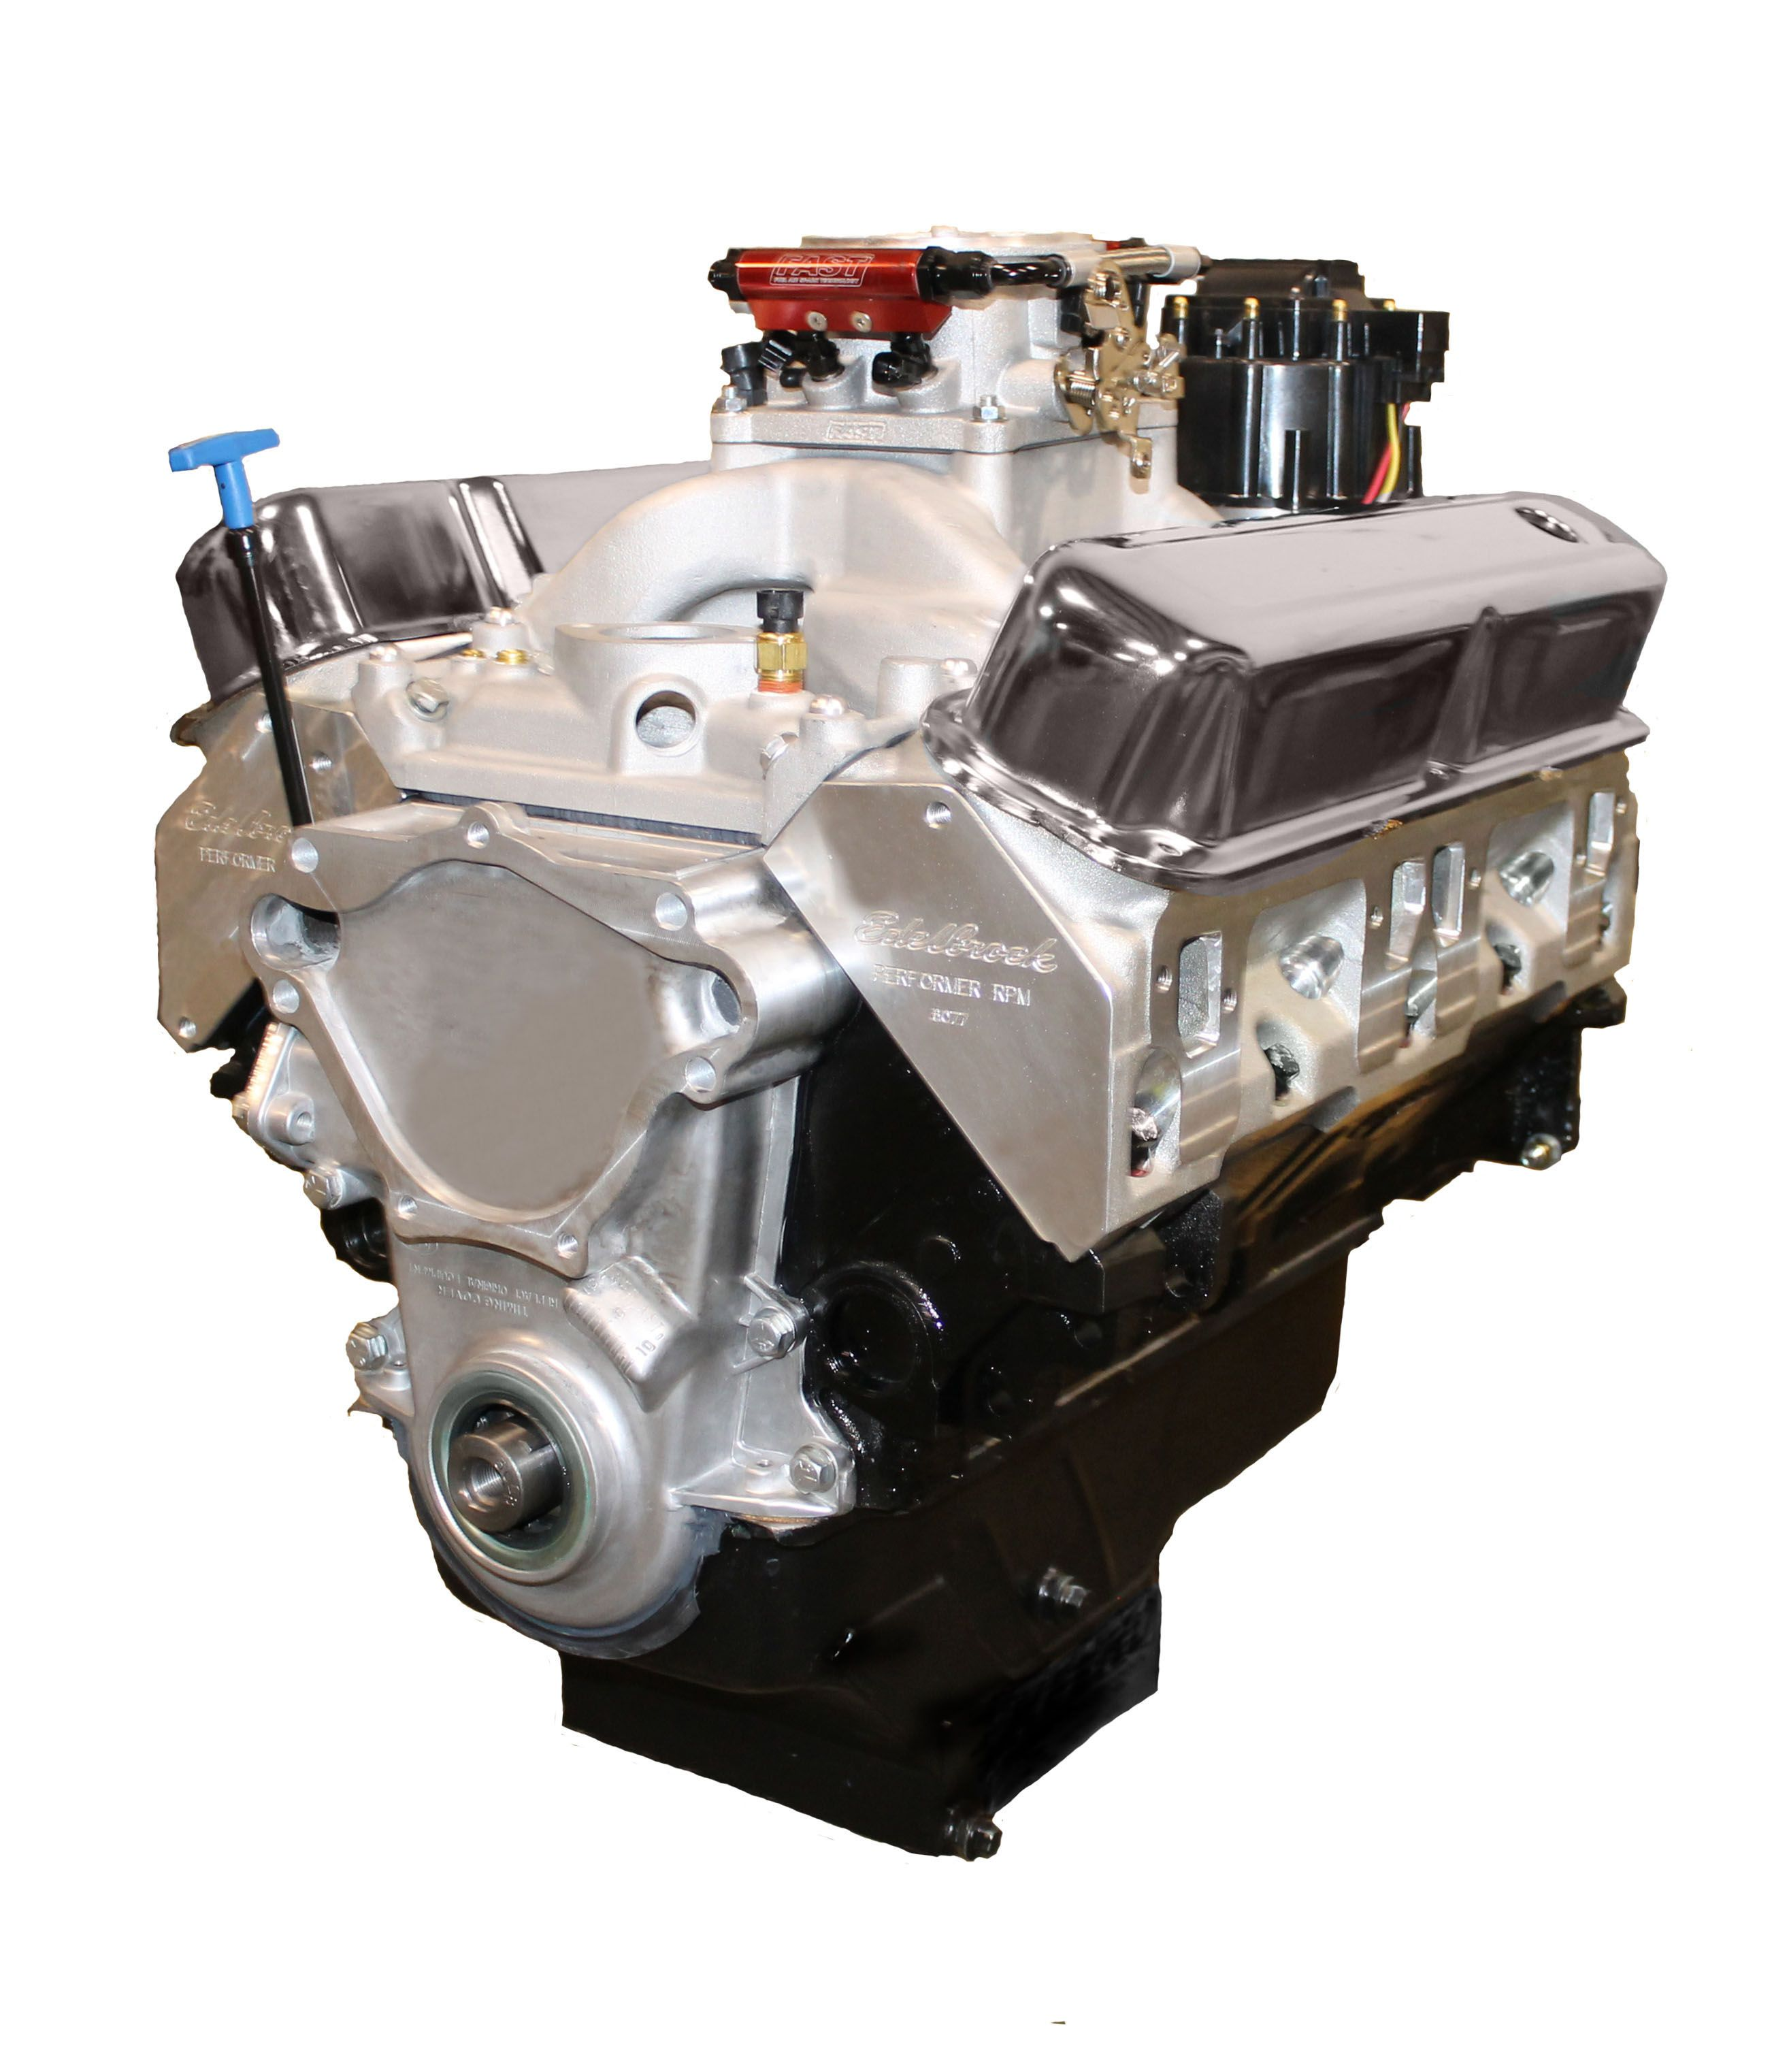 408ci stroker crate engine small block chrysler style dressed blueprint engines bpc4083ctf crate engine crateengine blueprintengines 408stroker bpc4083ctf malvernweather Choice Image